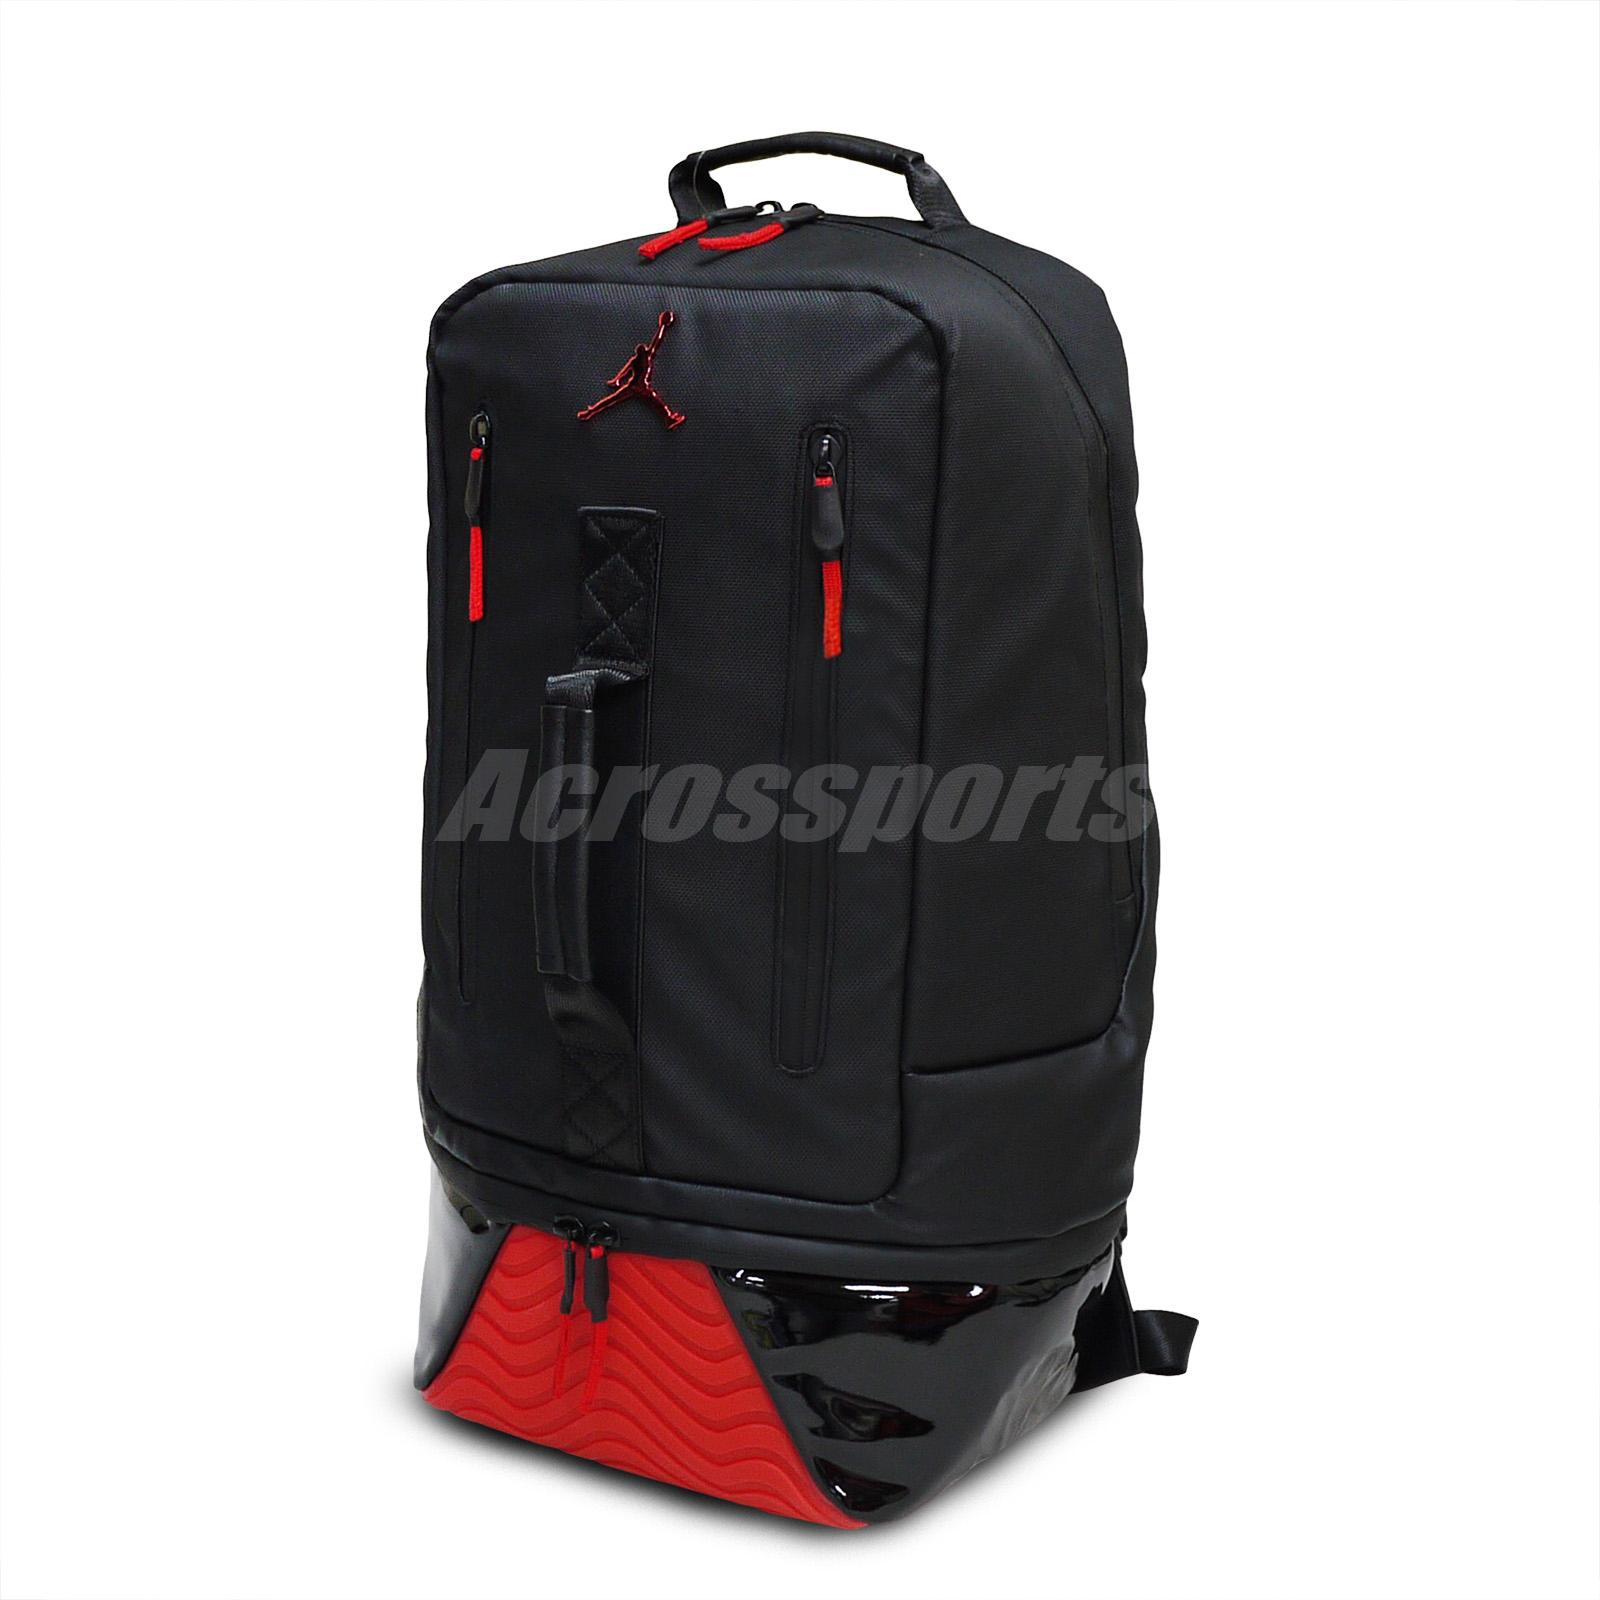 4d24bd37bcf Details about Nike Air Jordan Retro 11 XI Pack Bred Black Red Basketball  Gym Backpack Bookbag